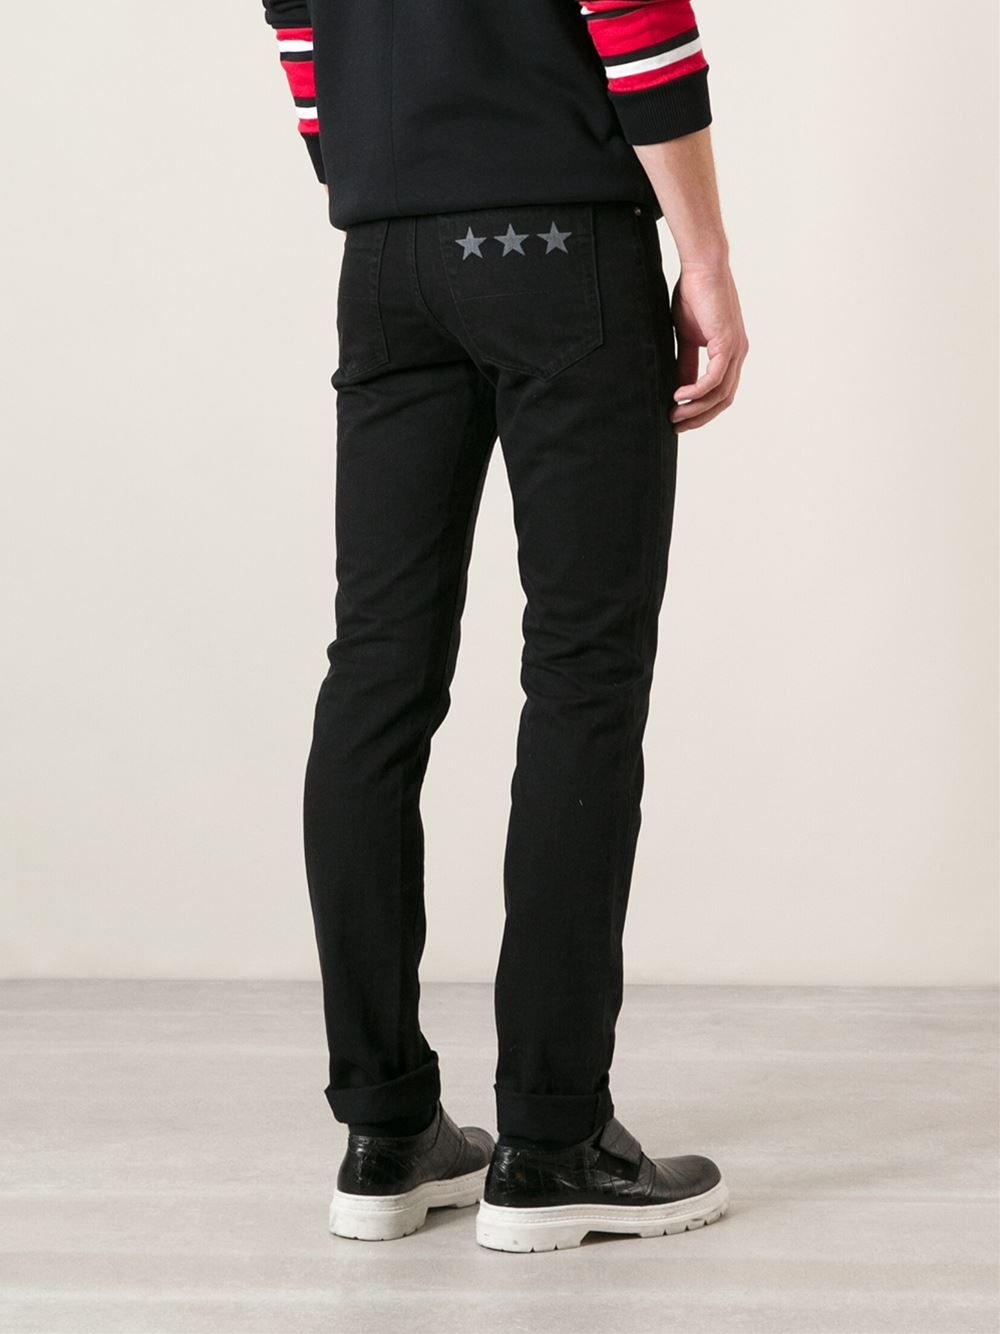 Black Star Jeans - Jeans Am